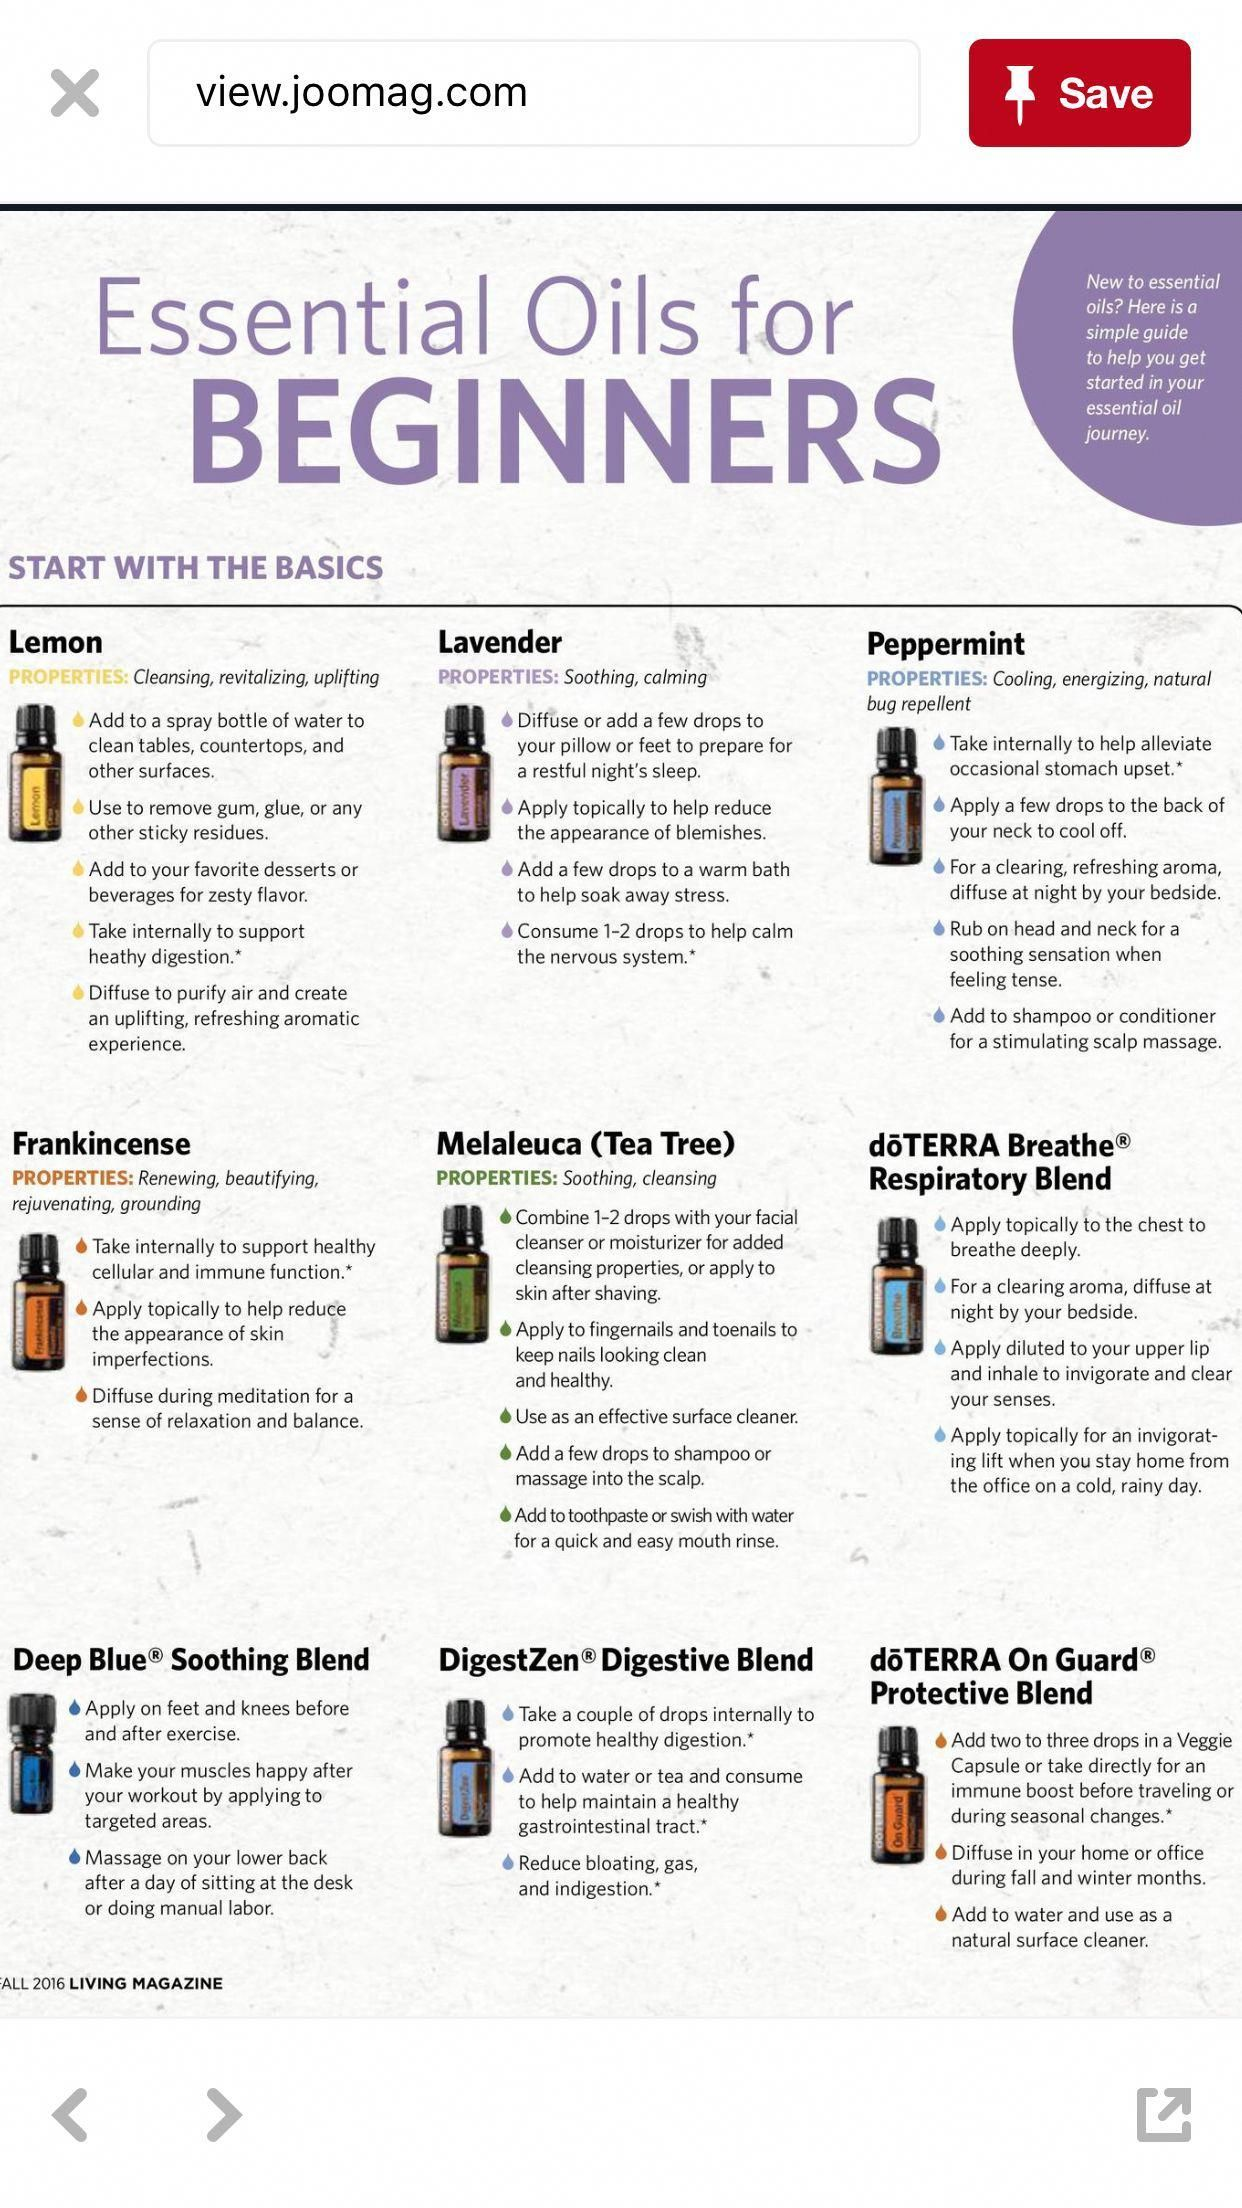 cff866f2793b3bc47b6086f7a9dd5098 - Better Homes And Gardens Essential Oils Safe